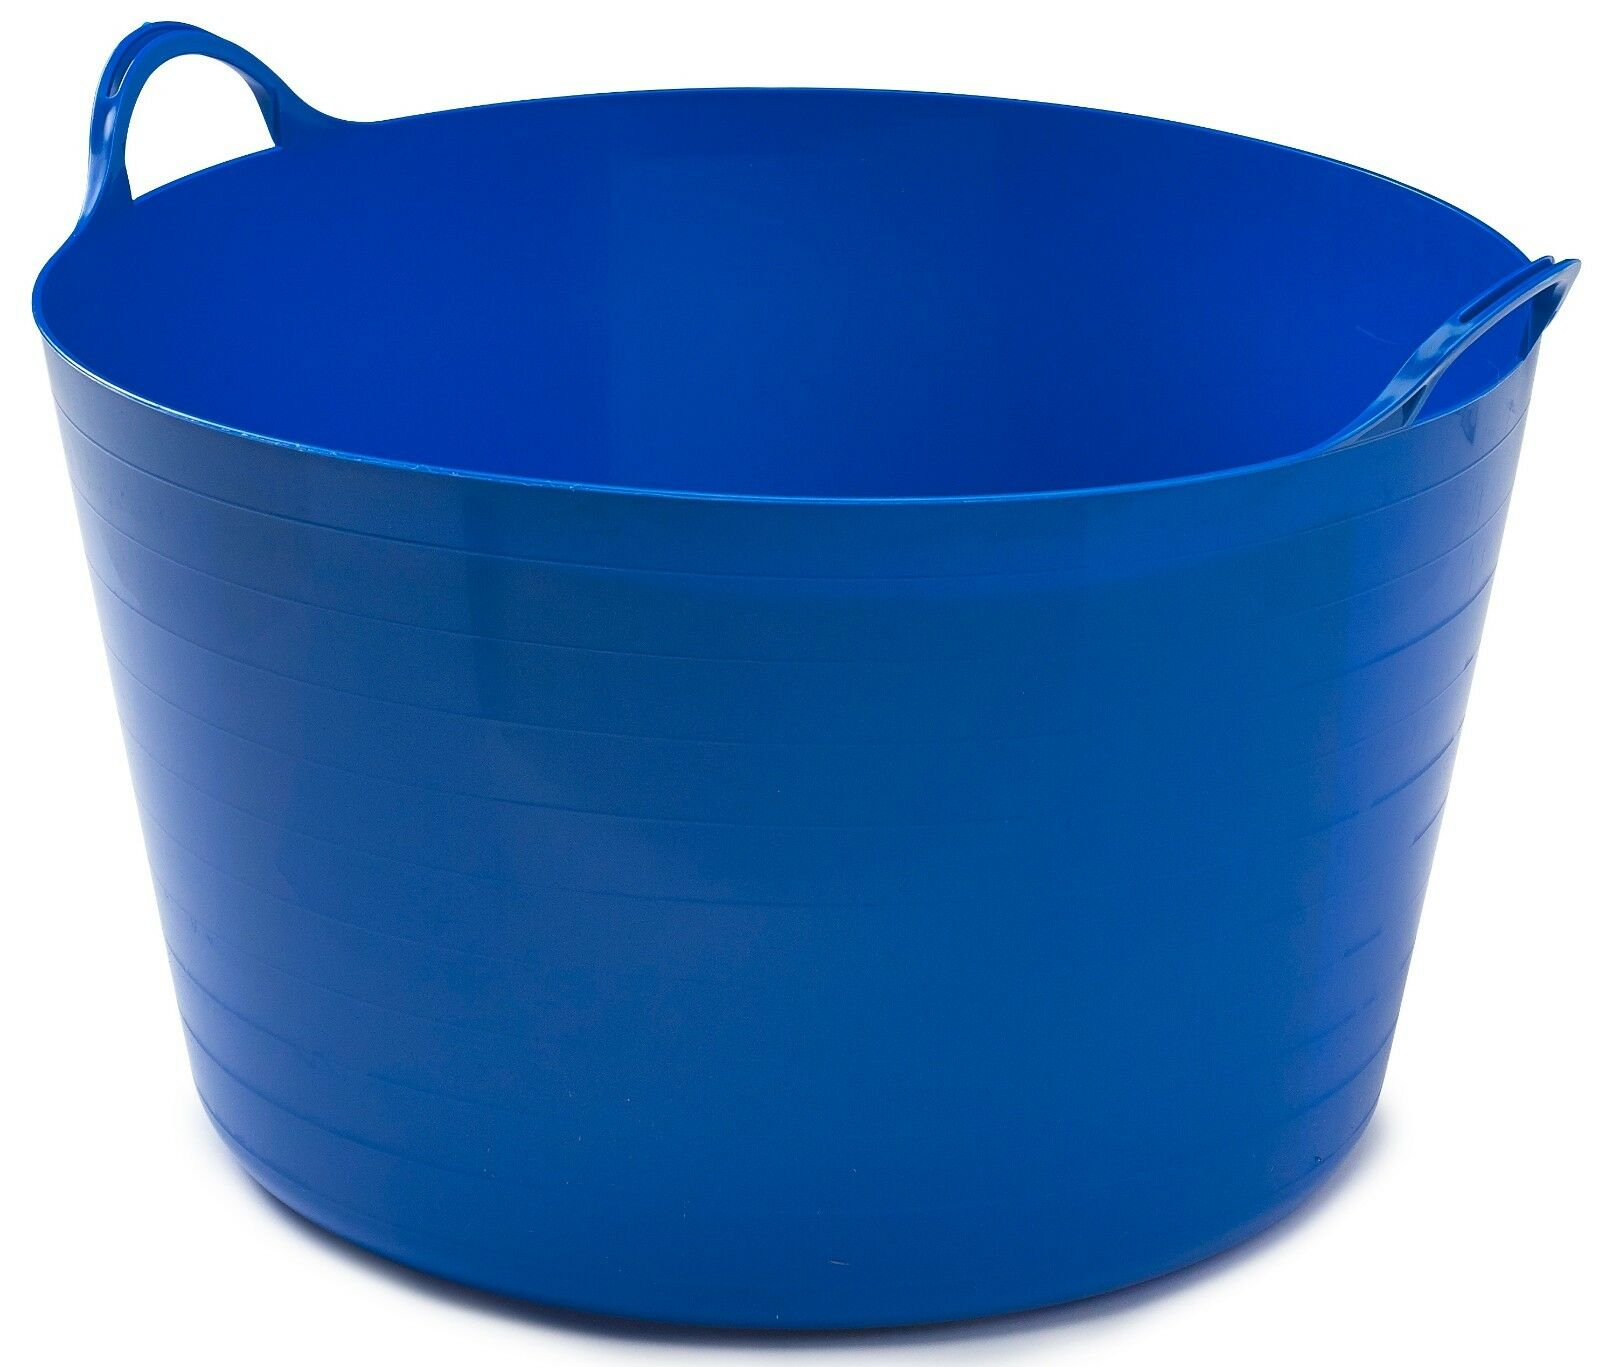 Flexible Plastic Flexi Tub Bucket Storage Log Basket Box & Handles Very Sturdy